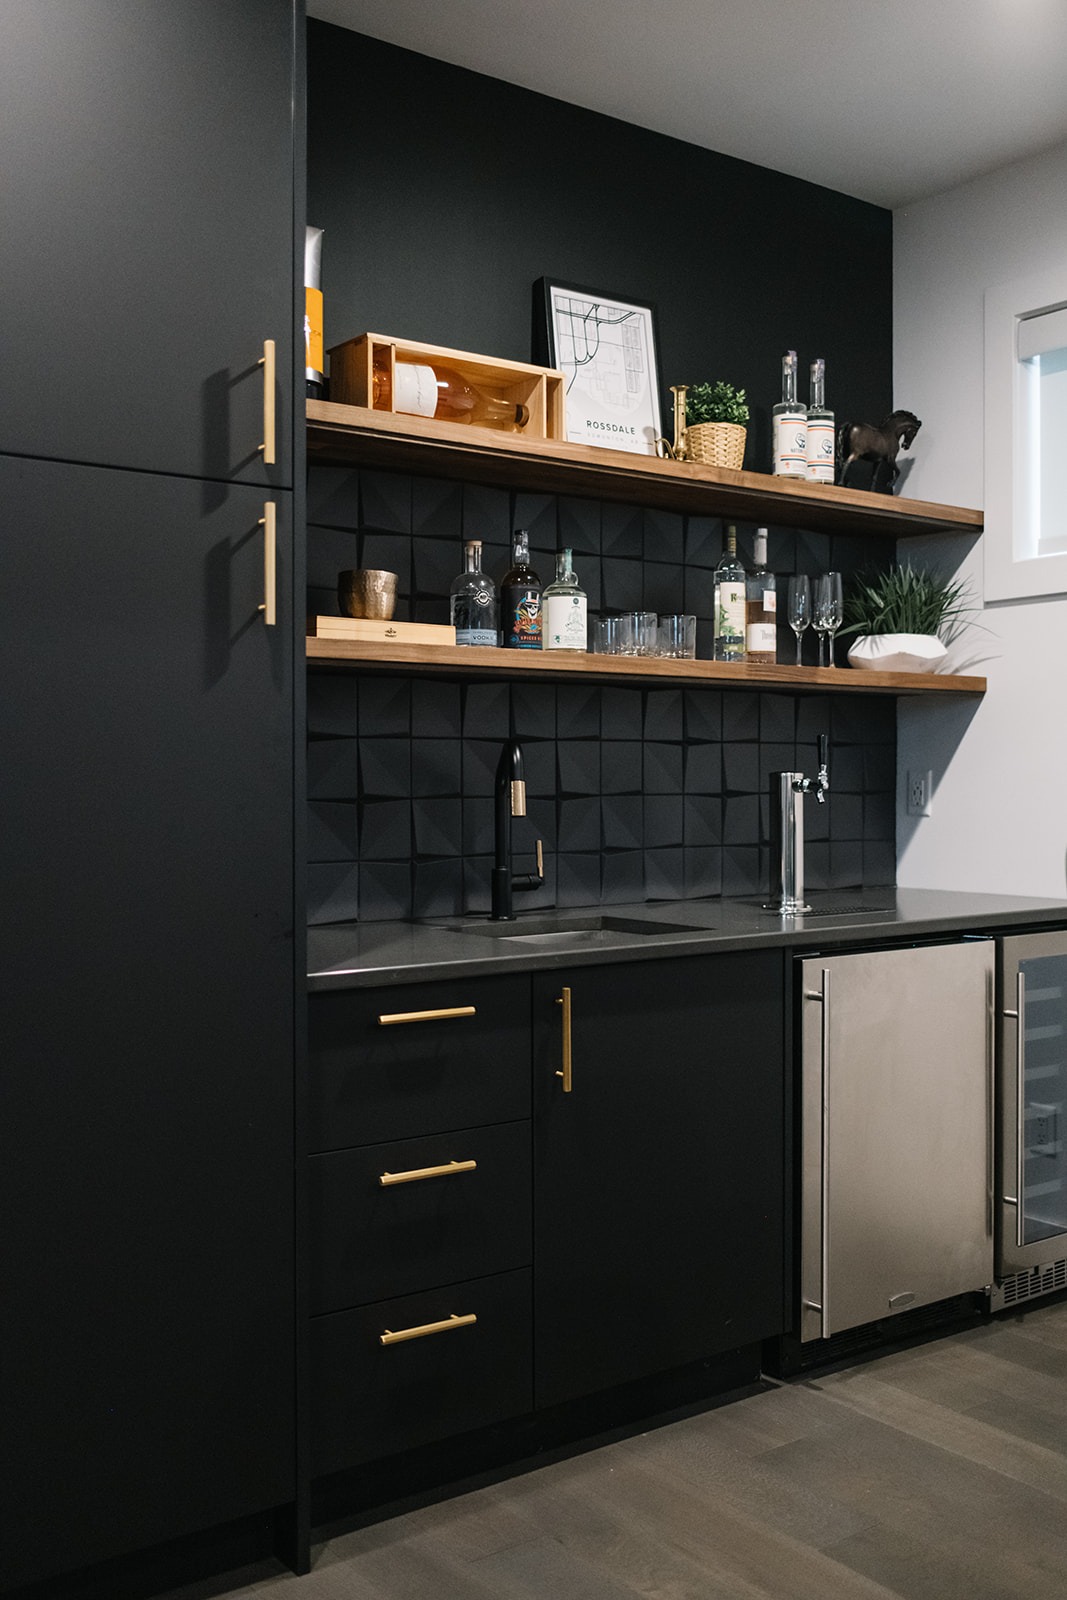 matte black cabinets with with brass hardware